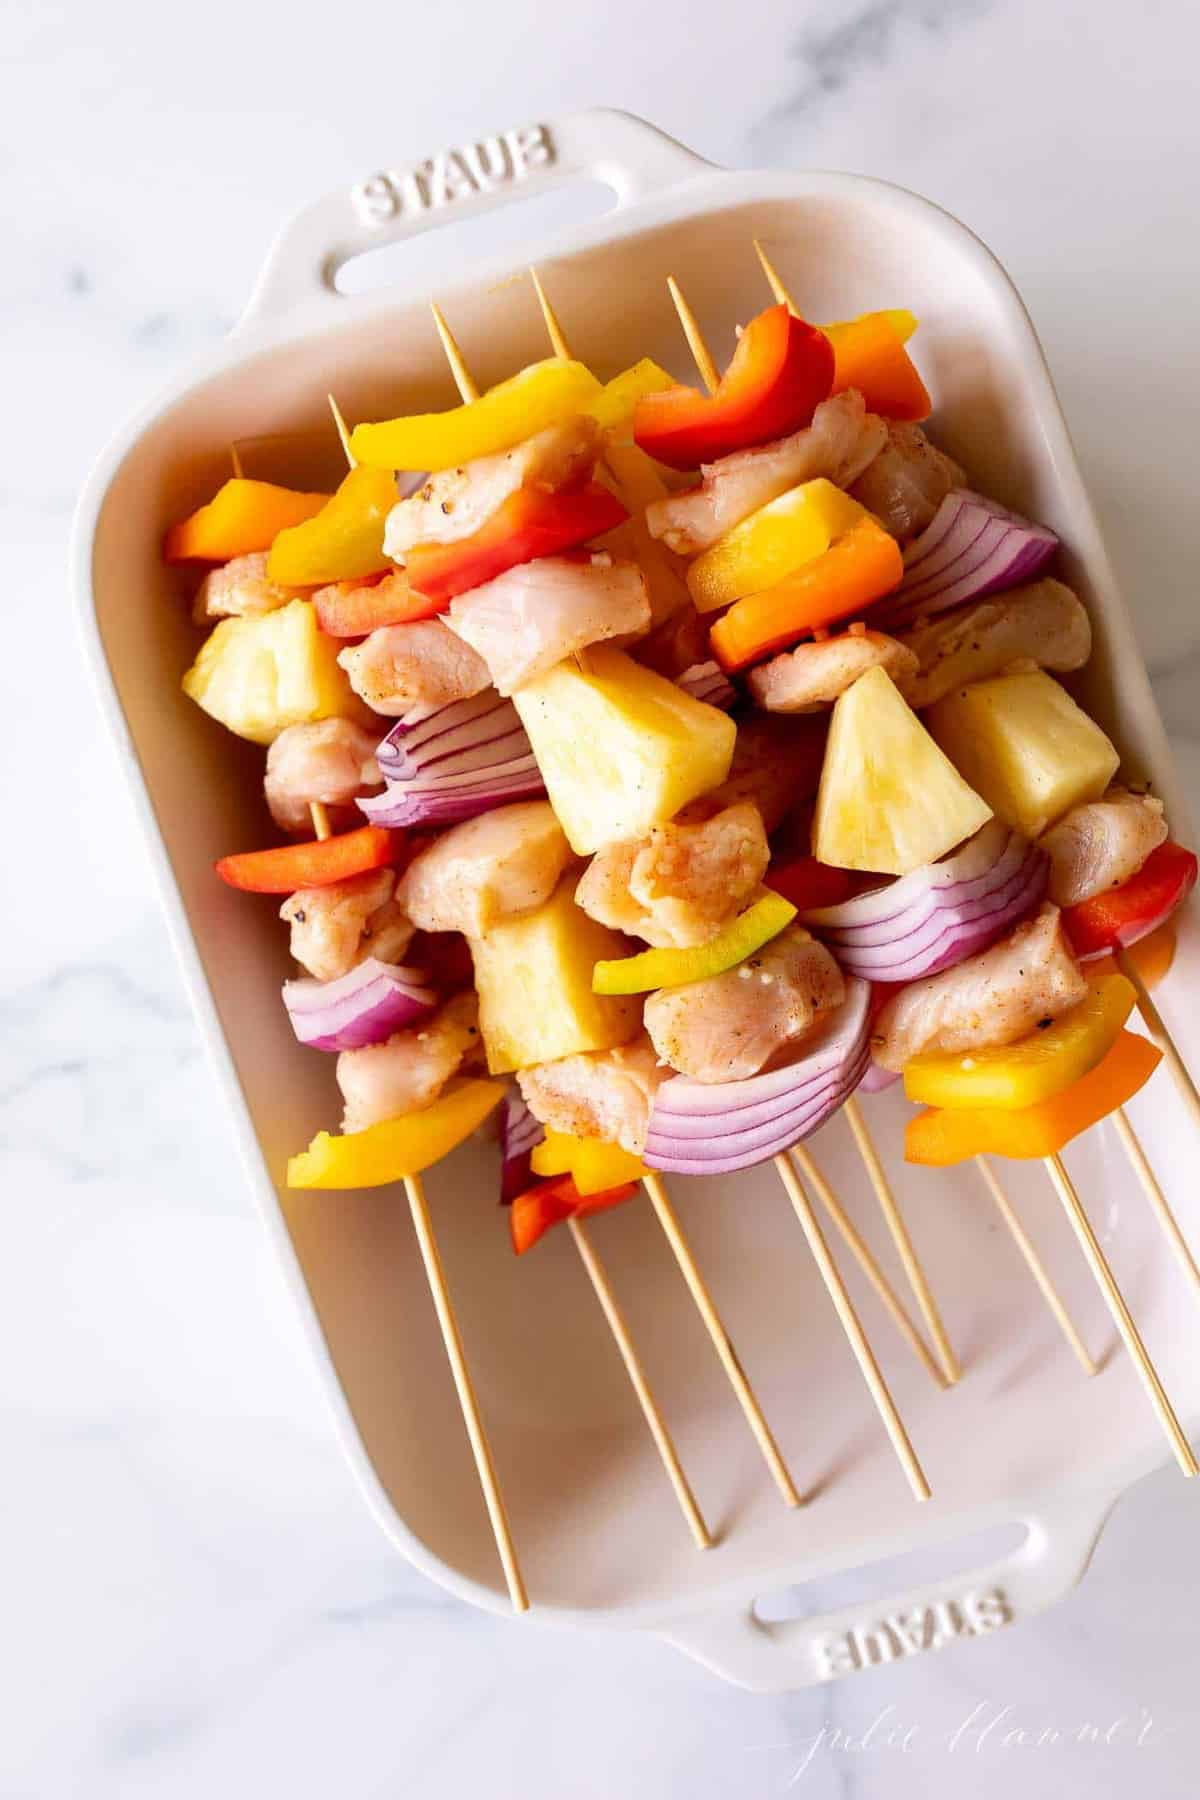 A white baking dish filled with bamboo chicken skewers, on a marble surface.